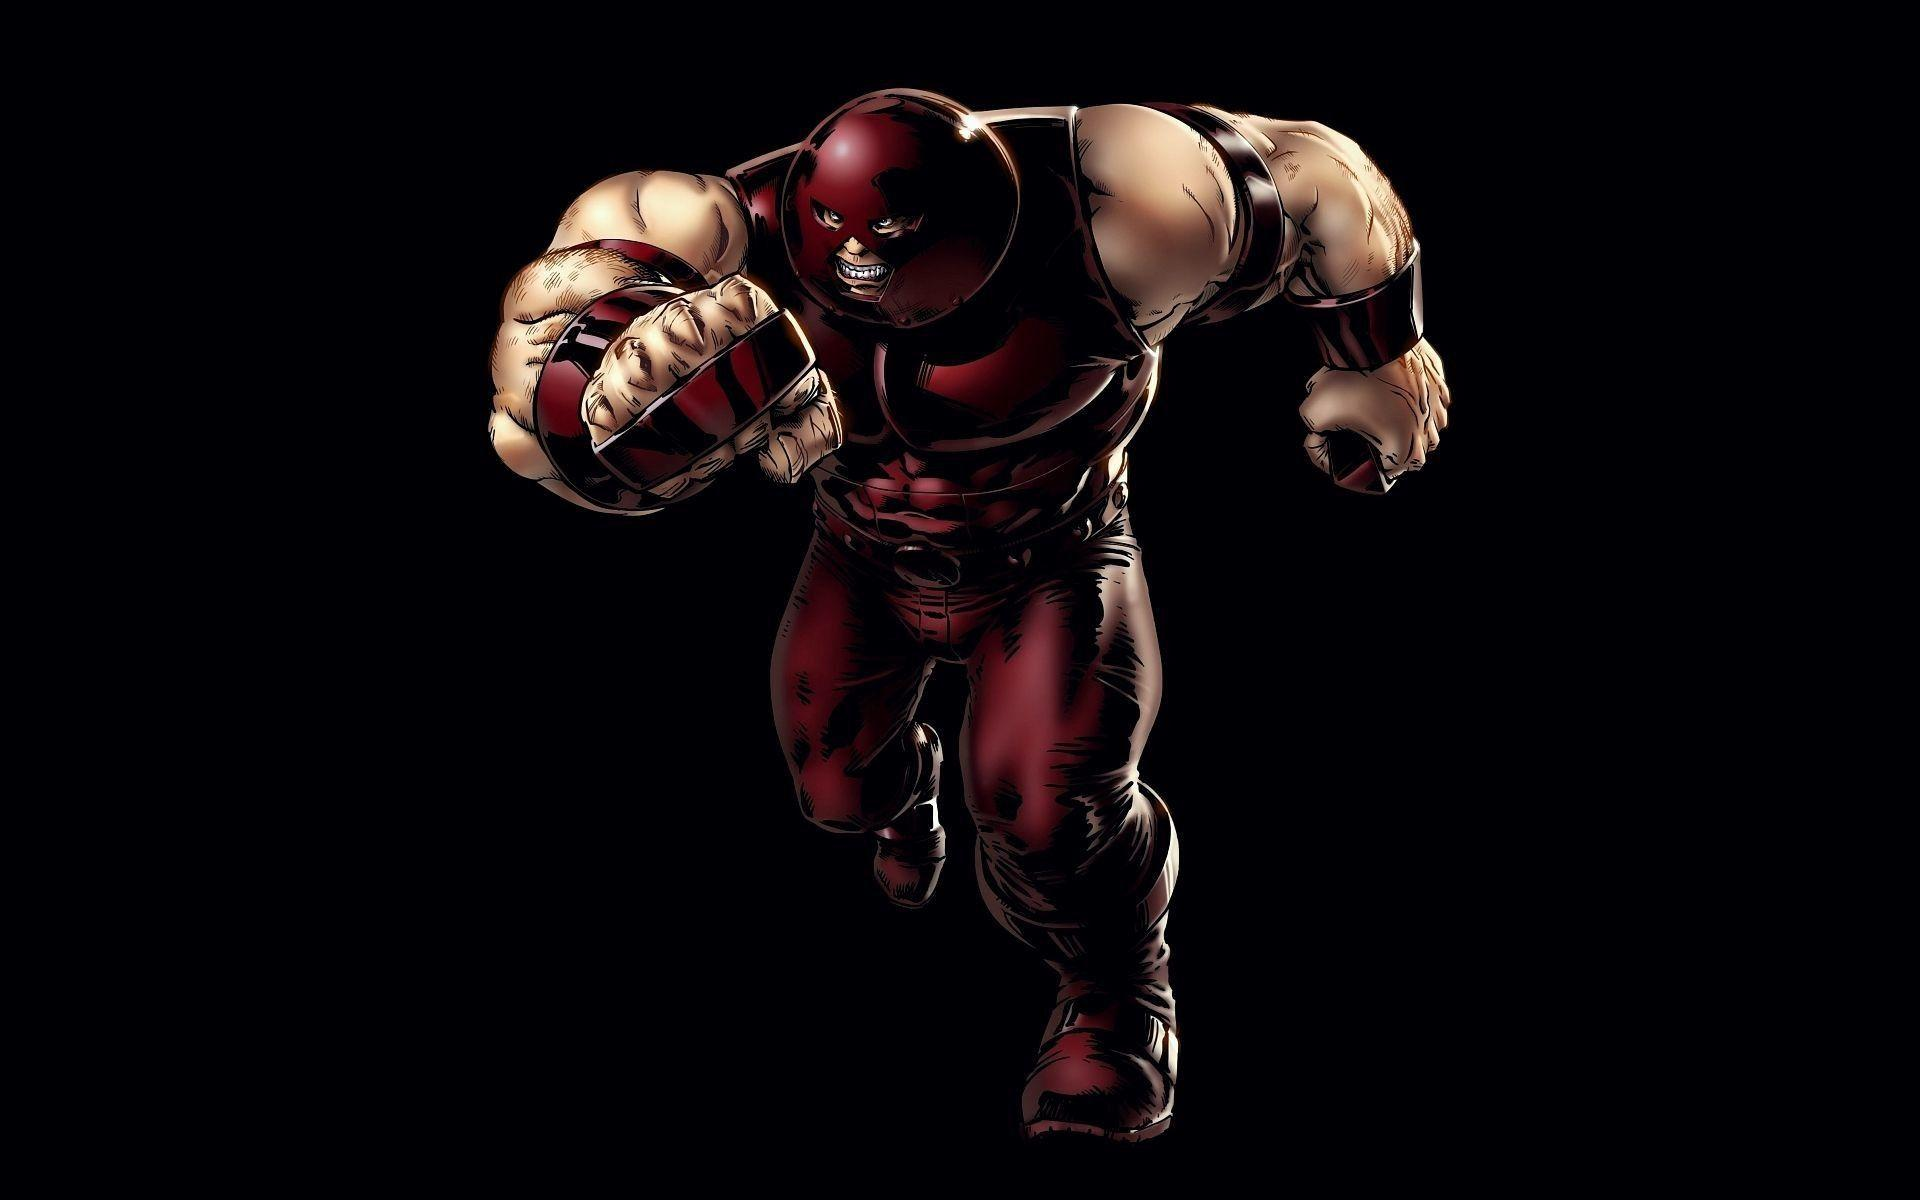 Comics: Juggernaut Marvel Desktop Wallpapers 1920x1200 for HD 16:9 ...